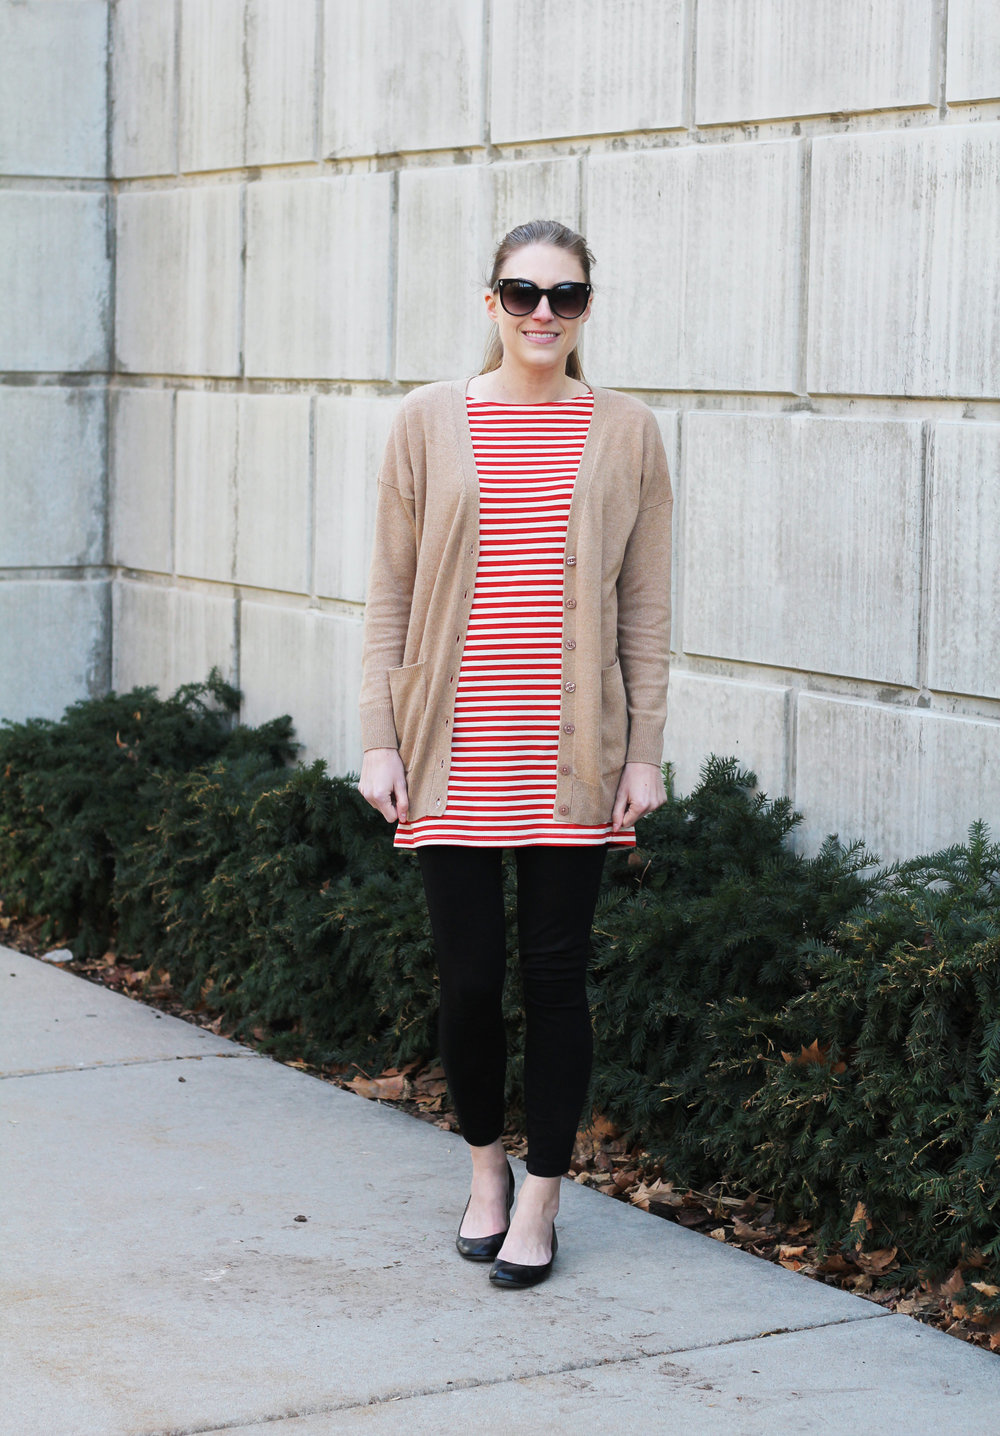 Red striped dress over black ponte pants outfit — Cotton Cashmere Cat Hair